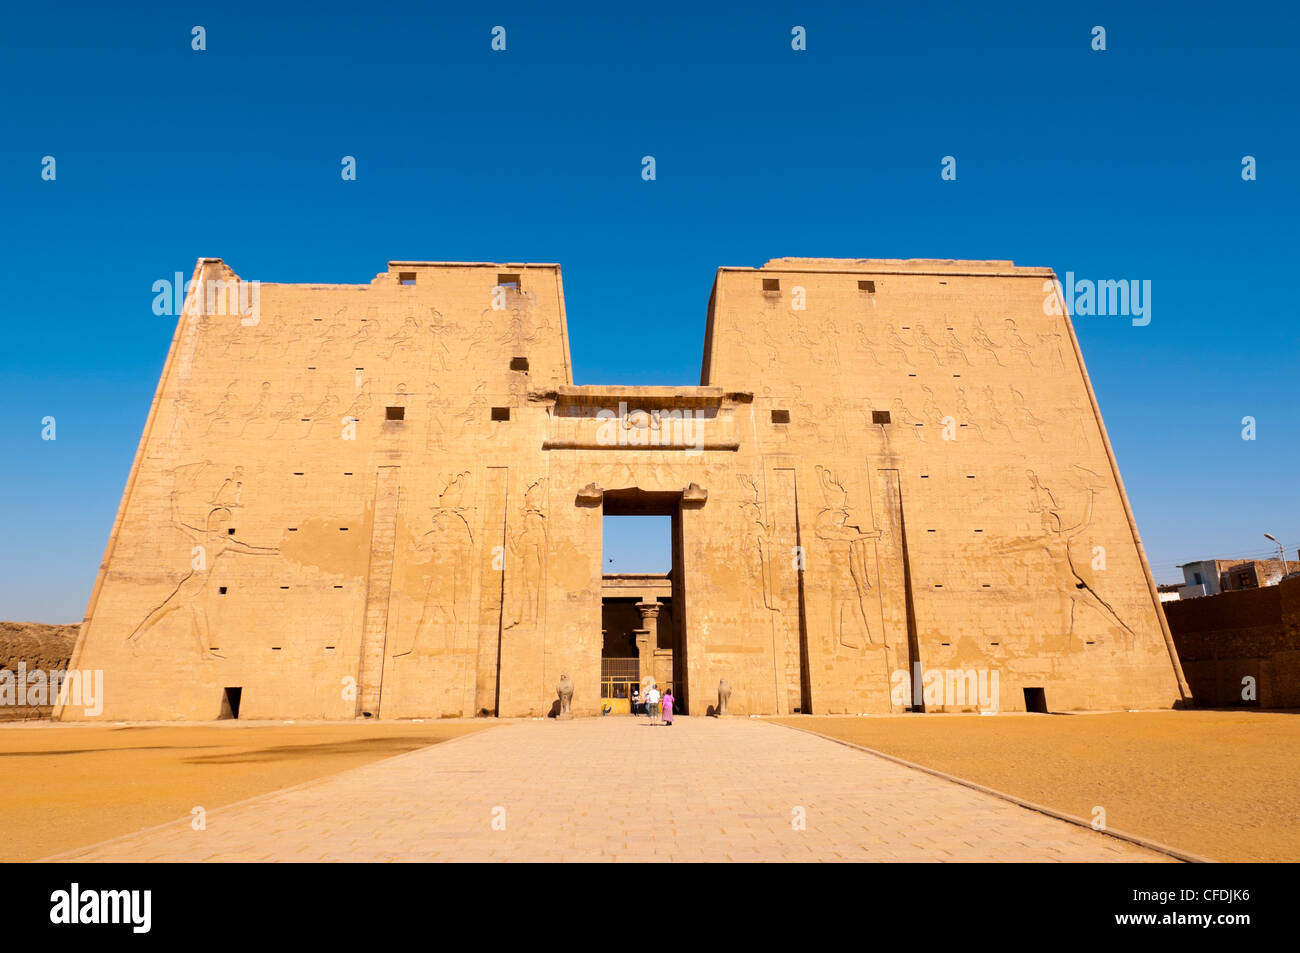 Temple of Horus, Edfu, Upper Egypt, Egypt, North Africa, Africa - Stock Image